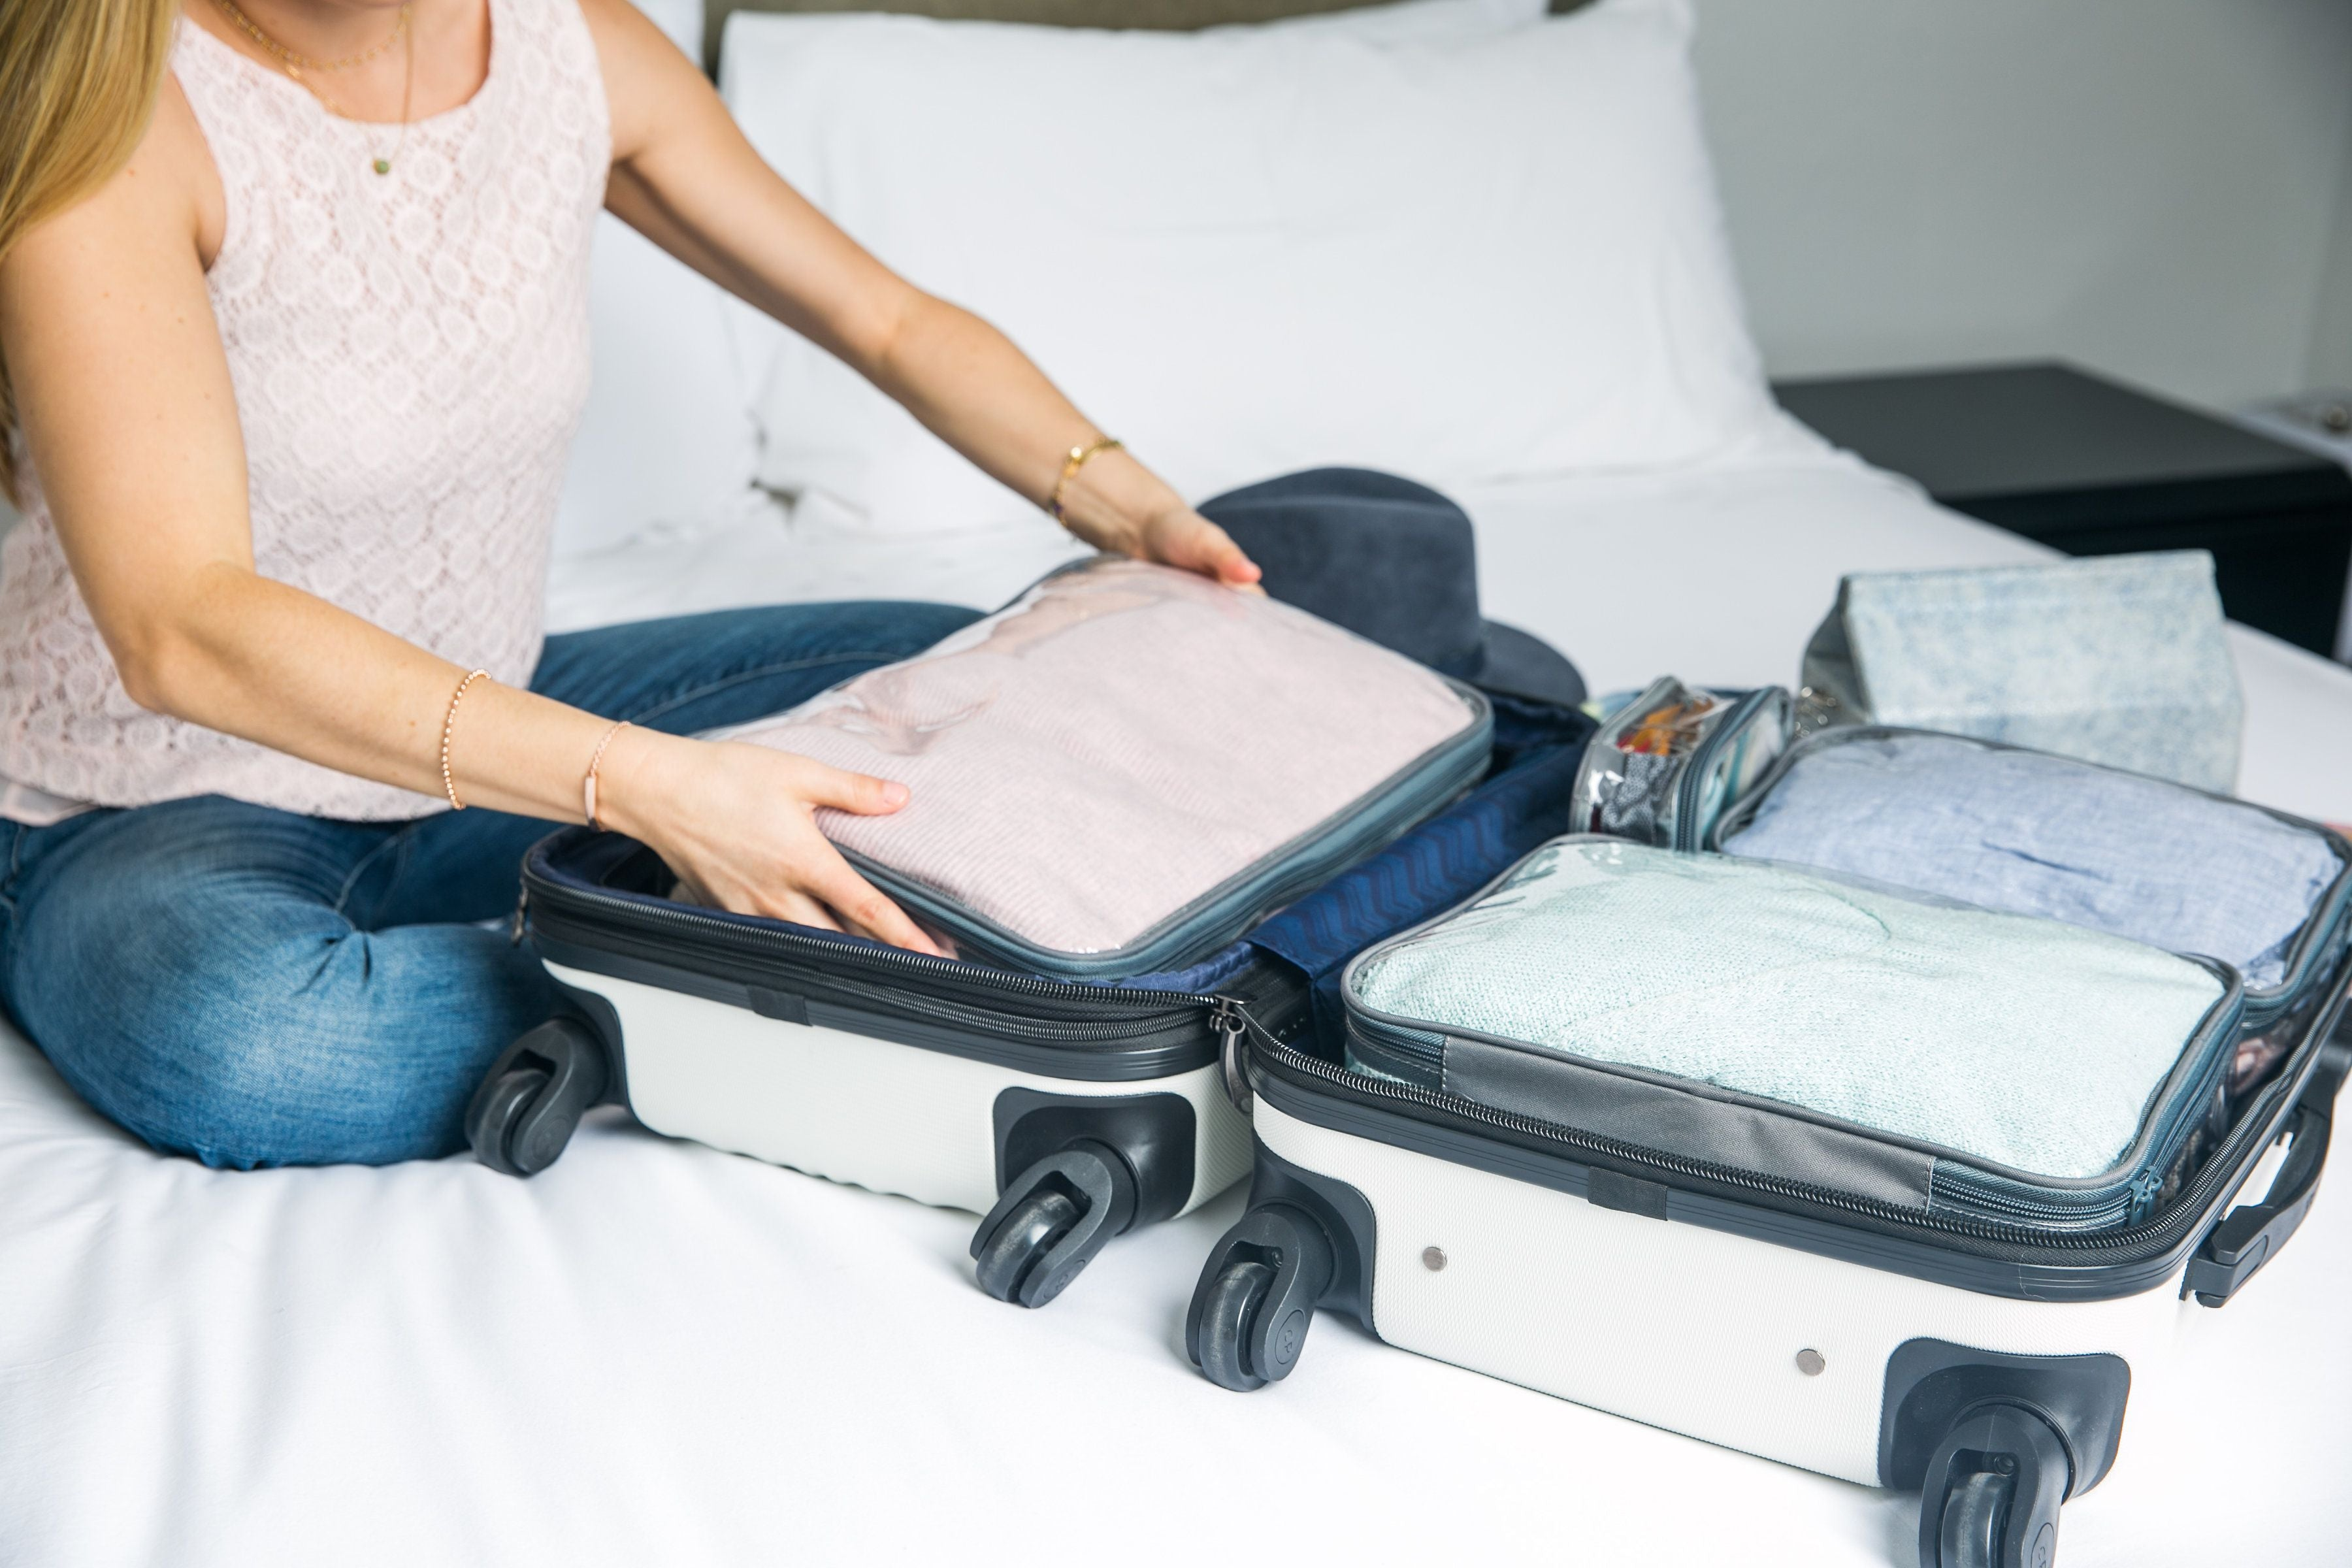 Woman using packing cubes to organize suitcase